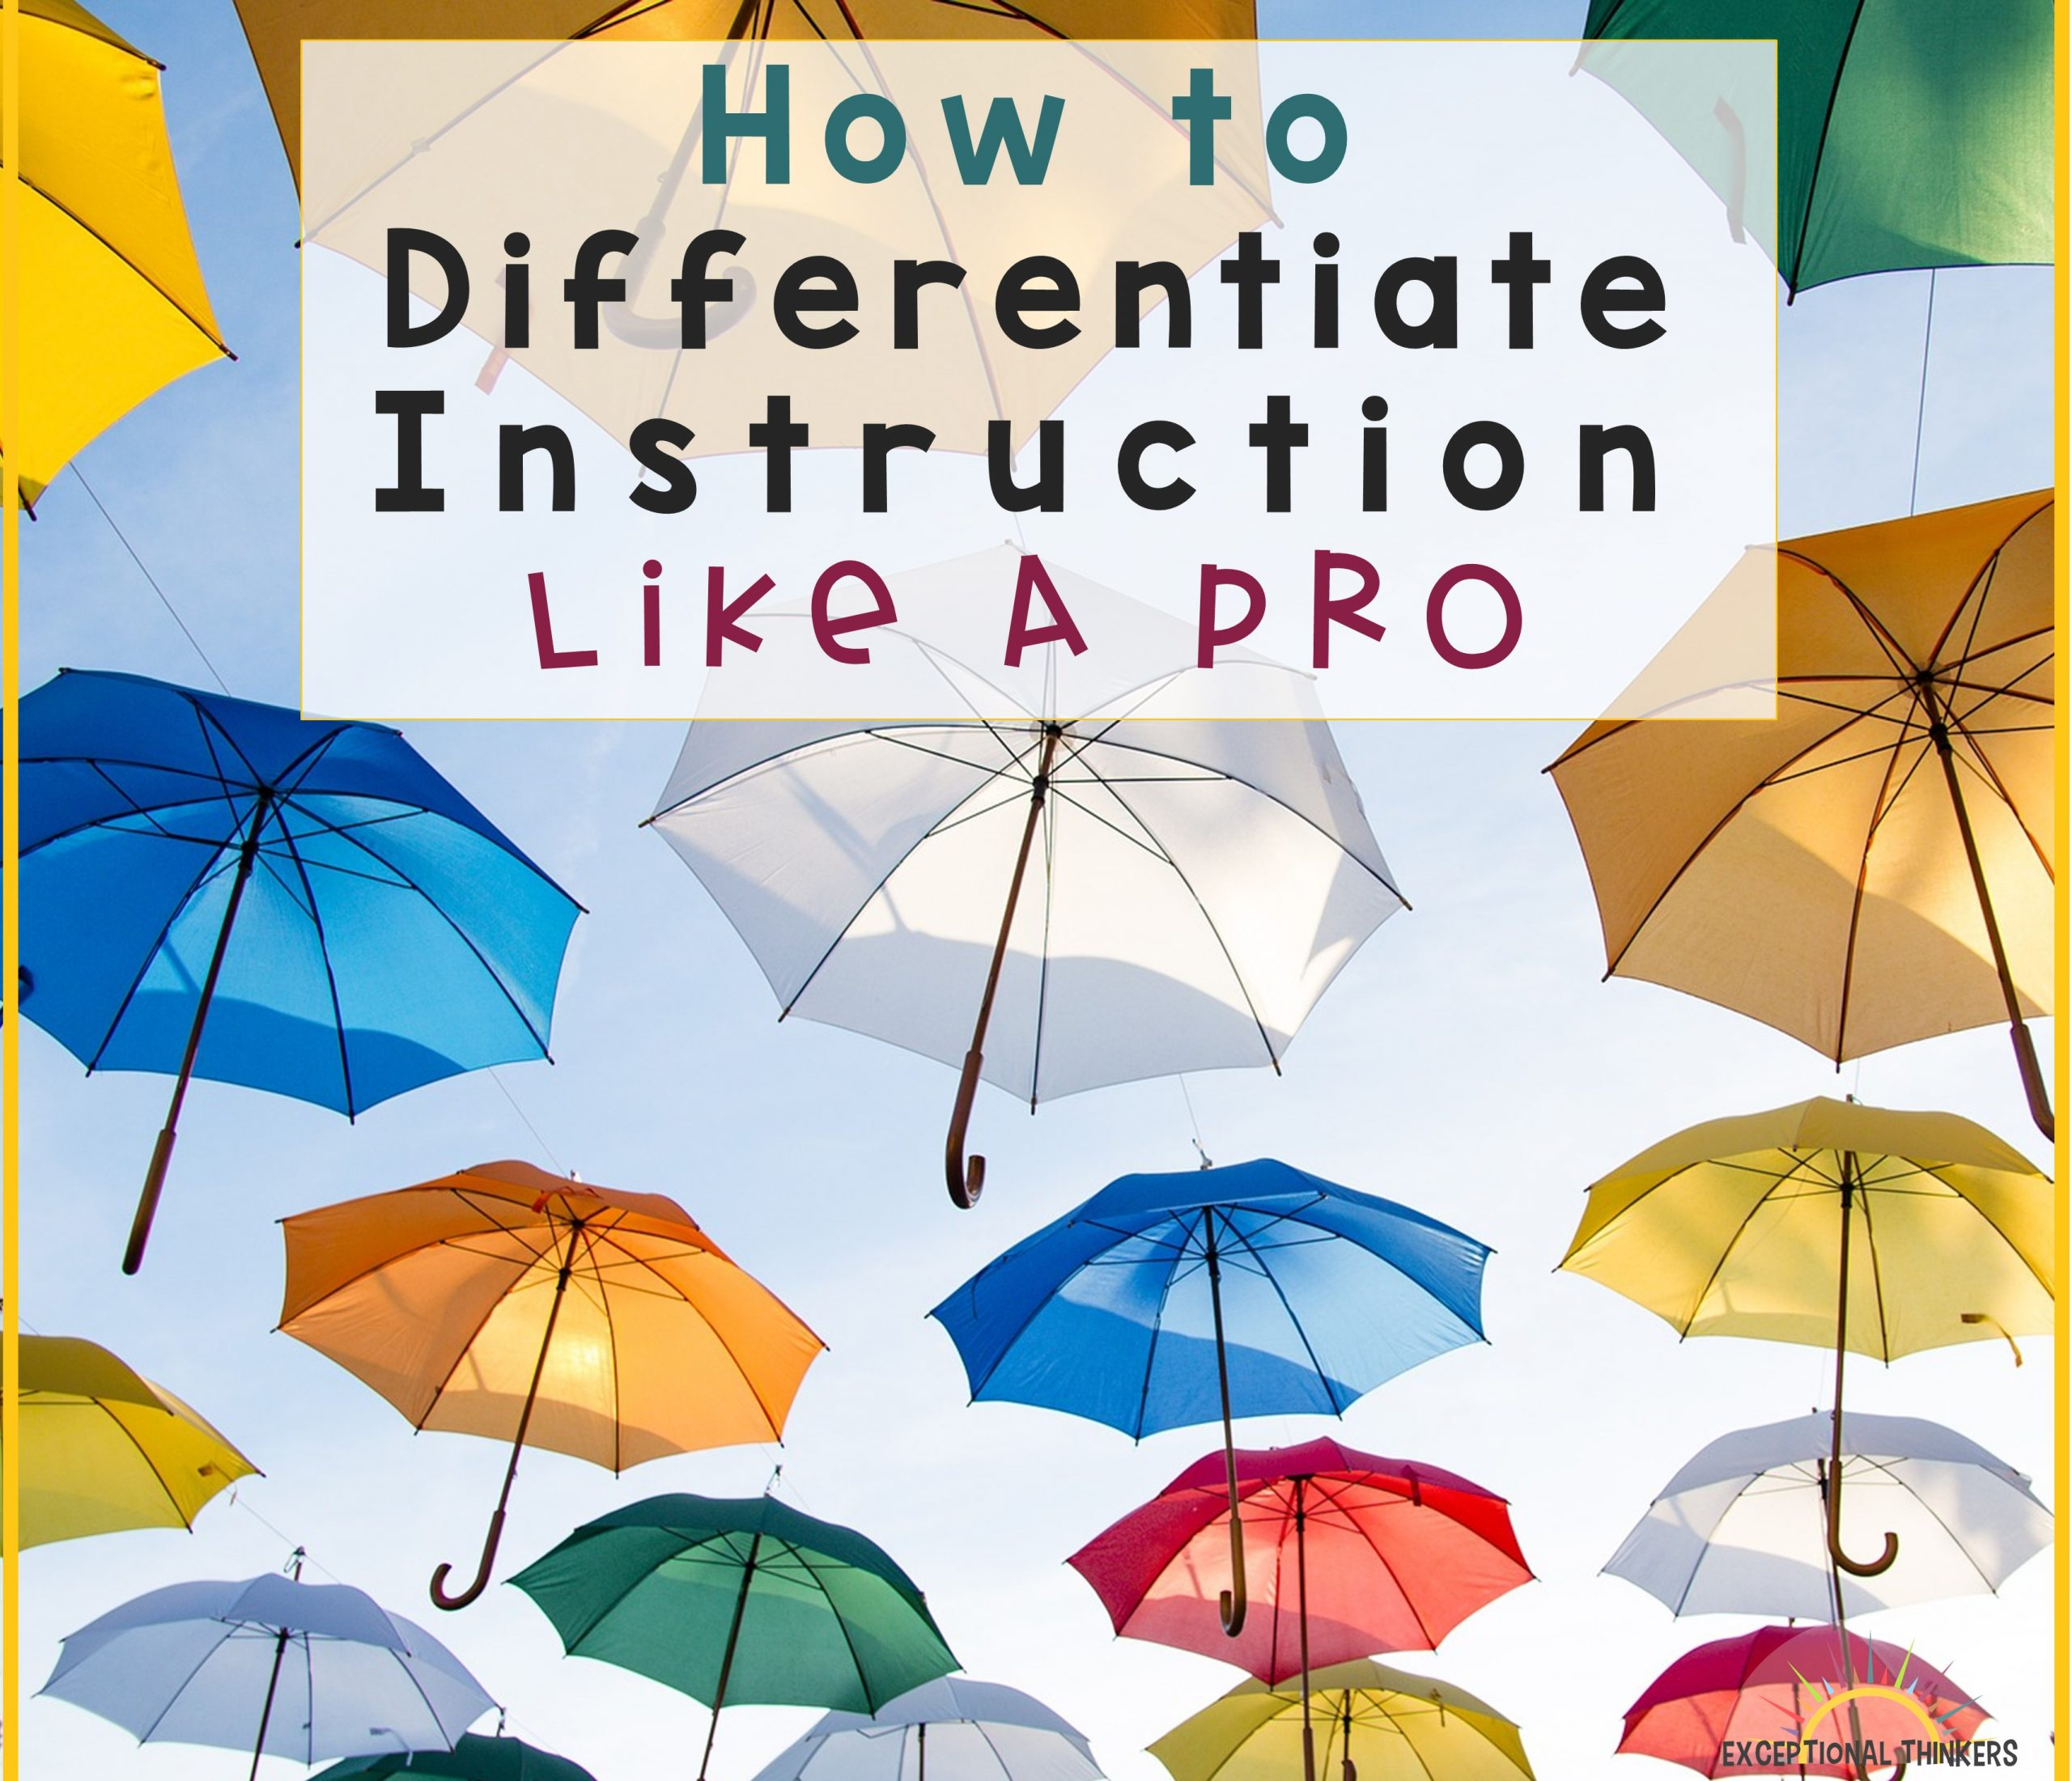 7 Seasoned Teachers Reveal How to Differentiate Instruction Like a Pro